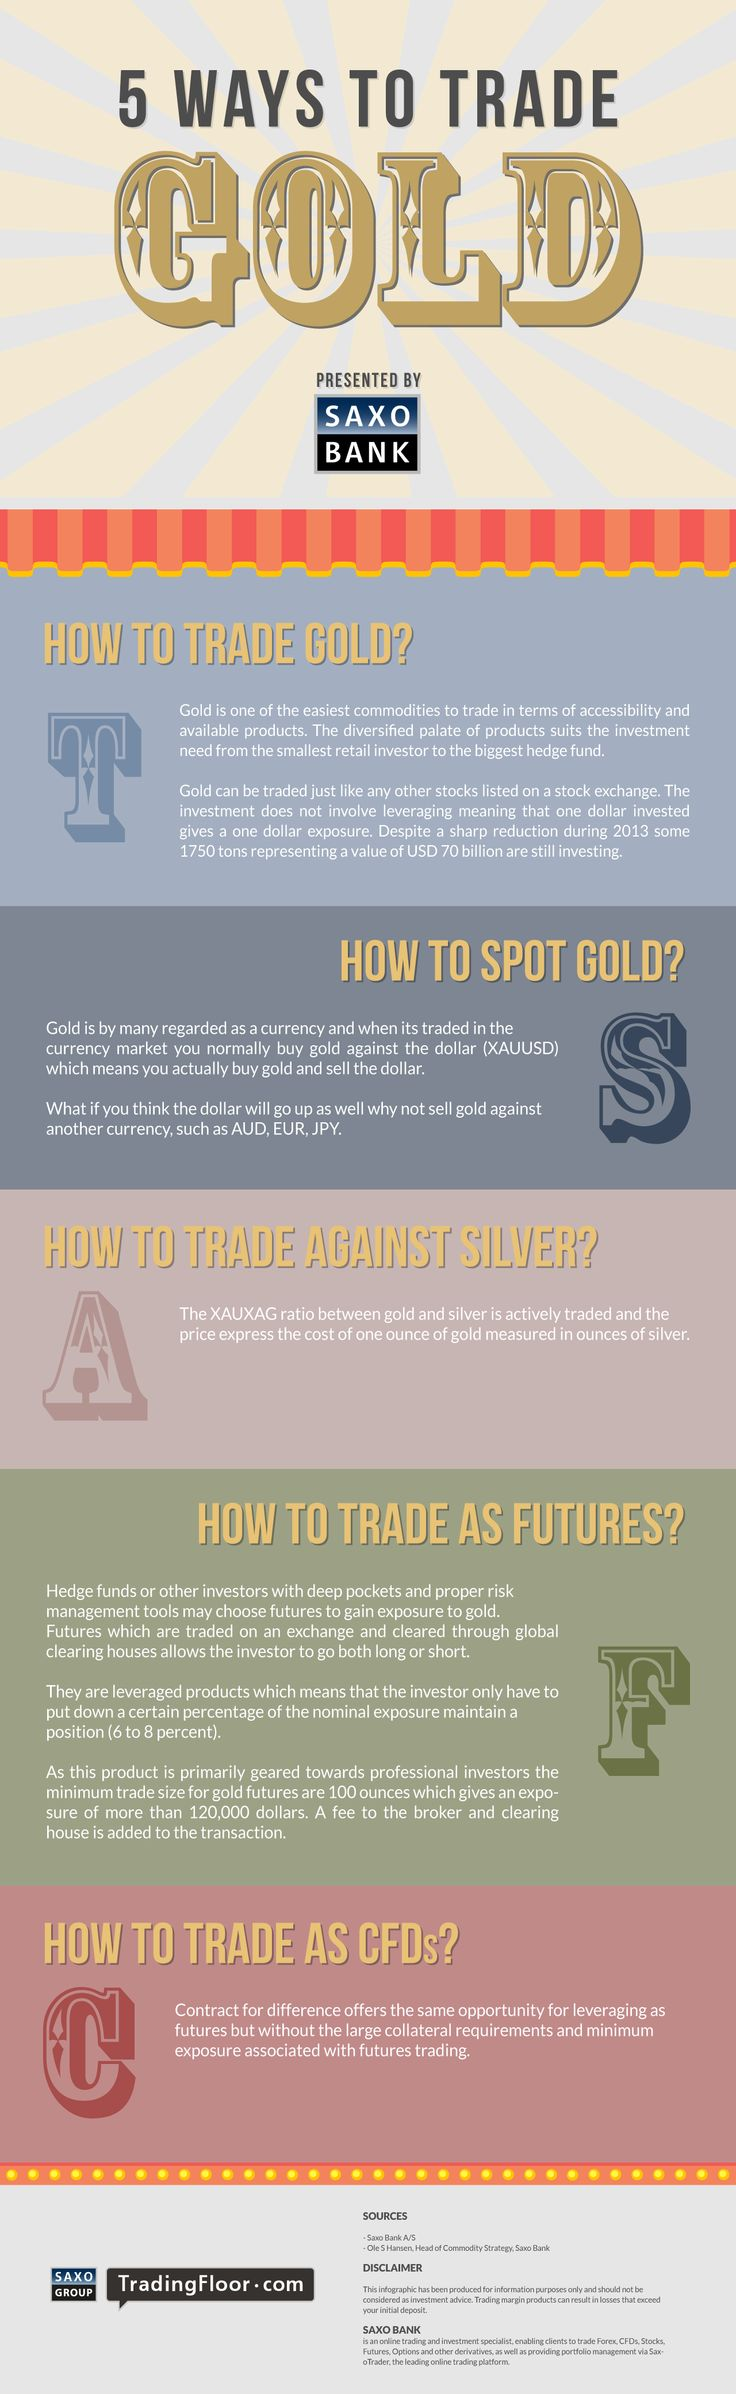 Here's an interesting infographic from the TradingFloor.com team.